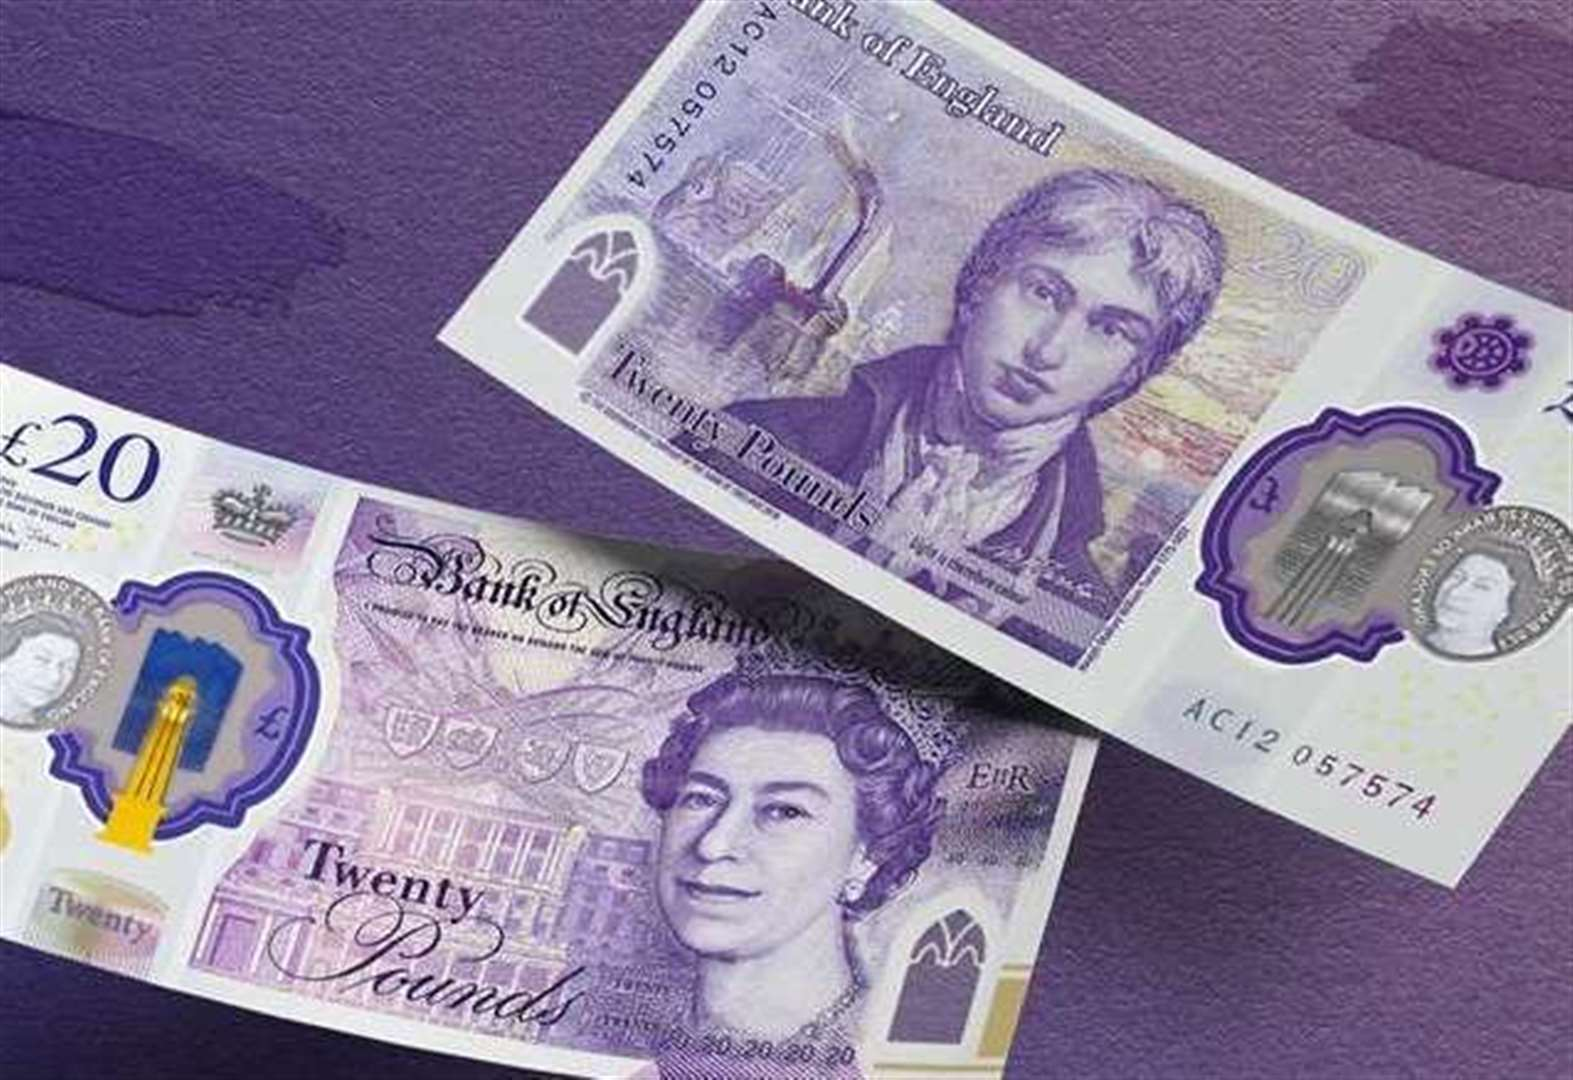 You can now spend the new £20 note